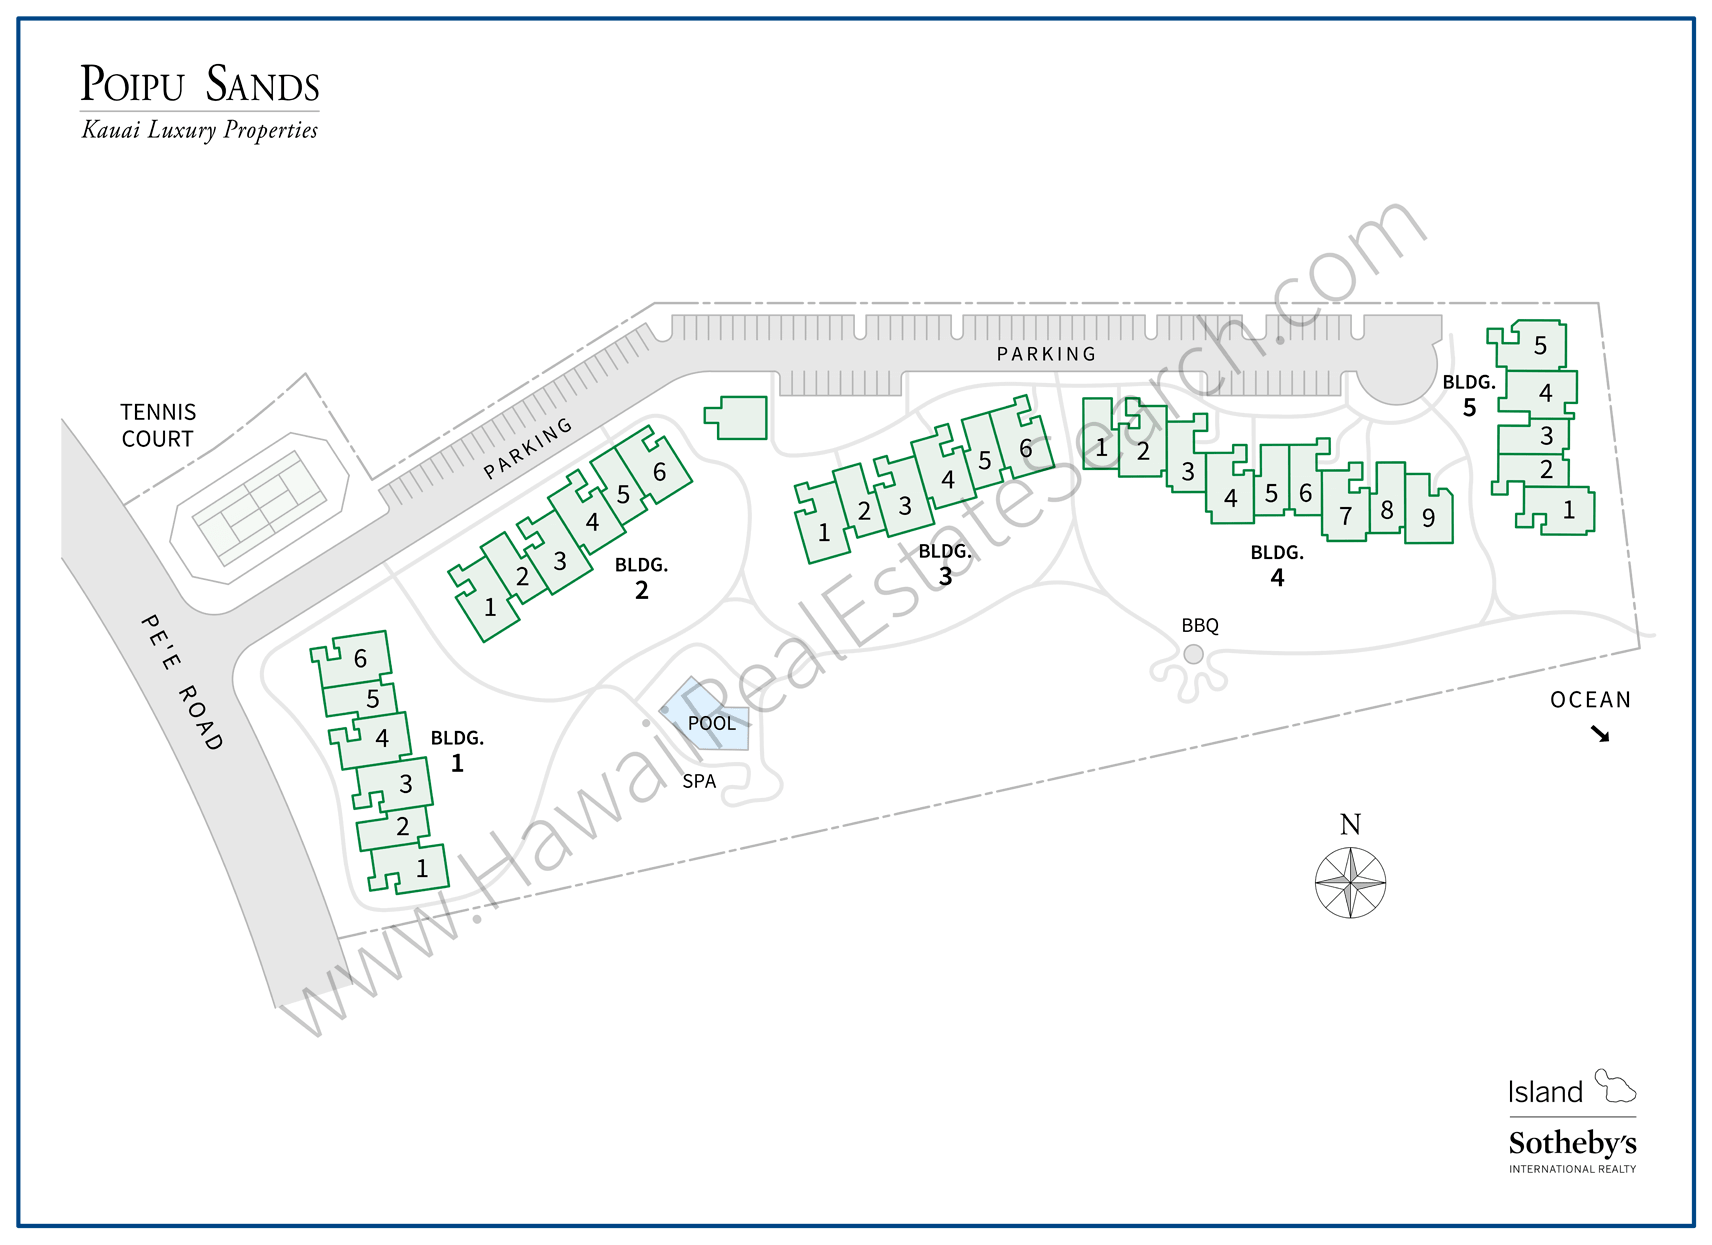 Poipu Sands Map